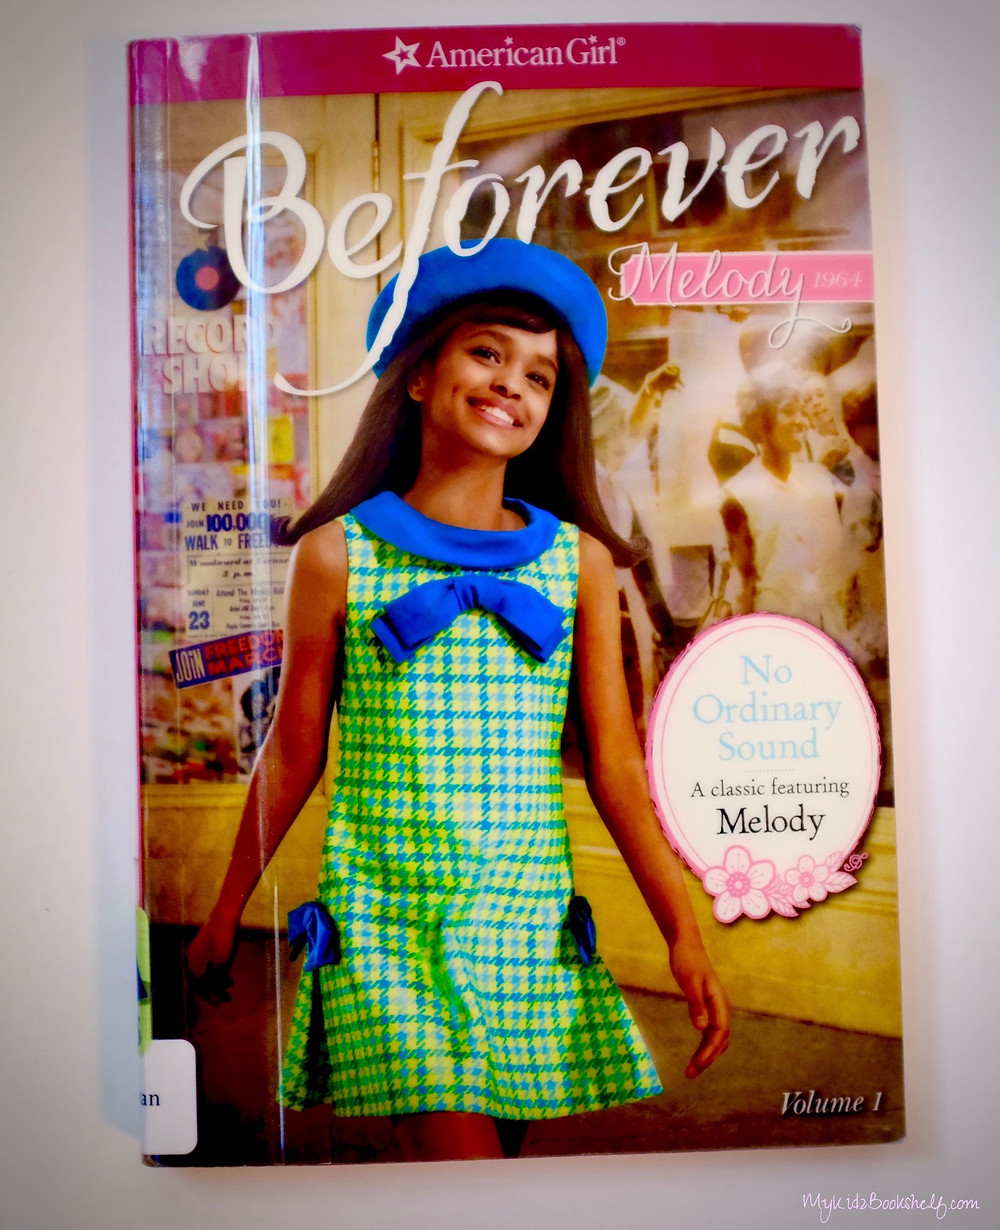 American-Girl-Beforever-Melody-book-with-picture-of-girl-on-front-dressed-in-1960's-dress-with-scenes-from-the-past-behind-her